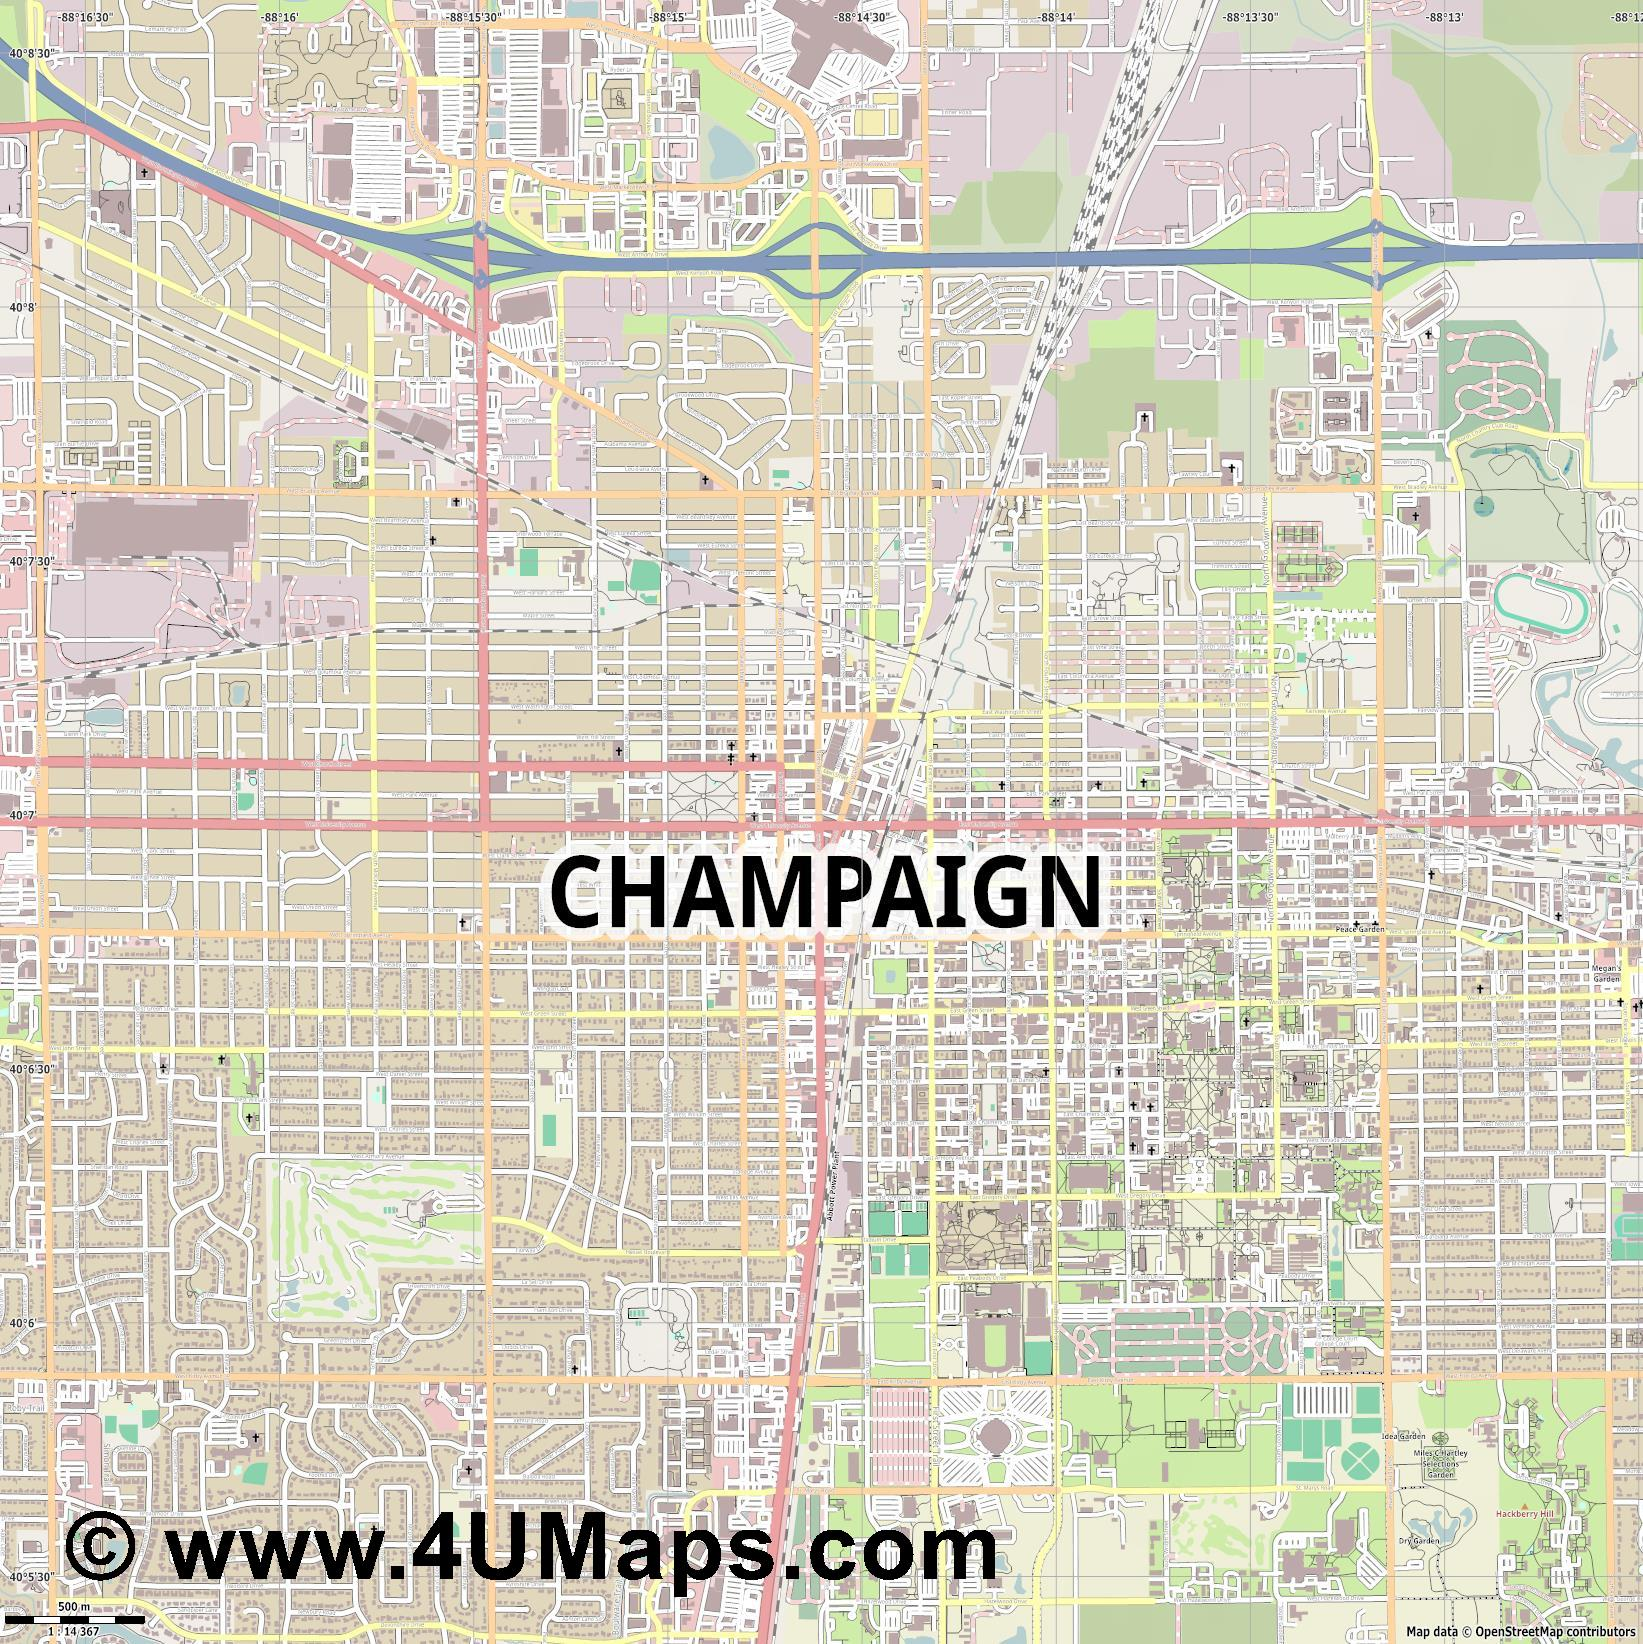 Champaign  jpg ultra high detail preview vector city map